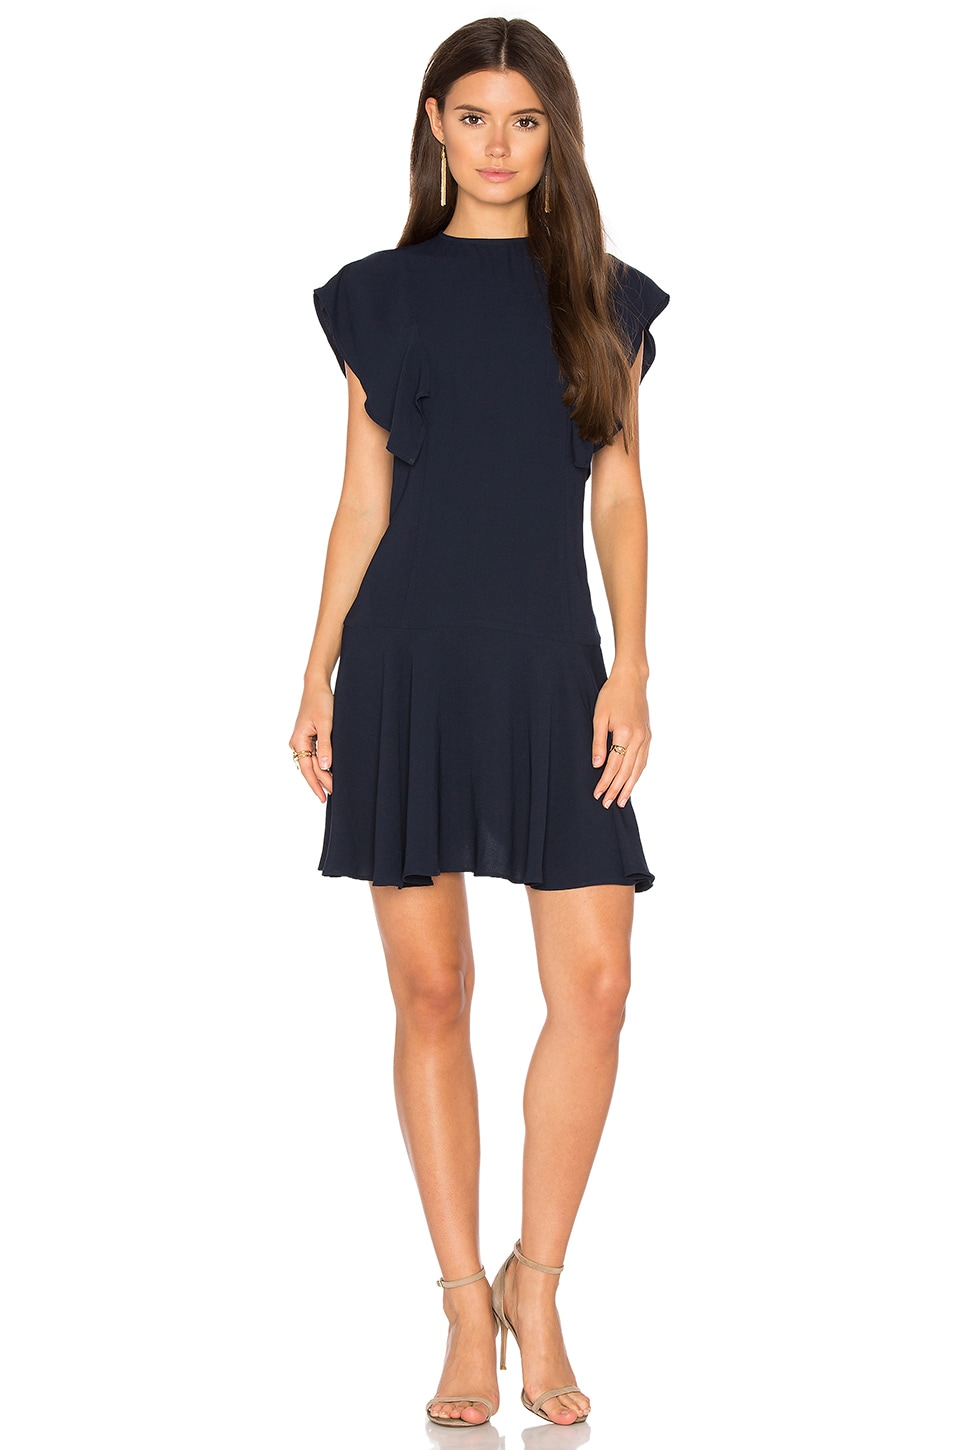 The Fifth Label Pave The Way Dress in Navy